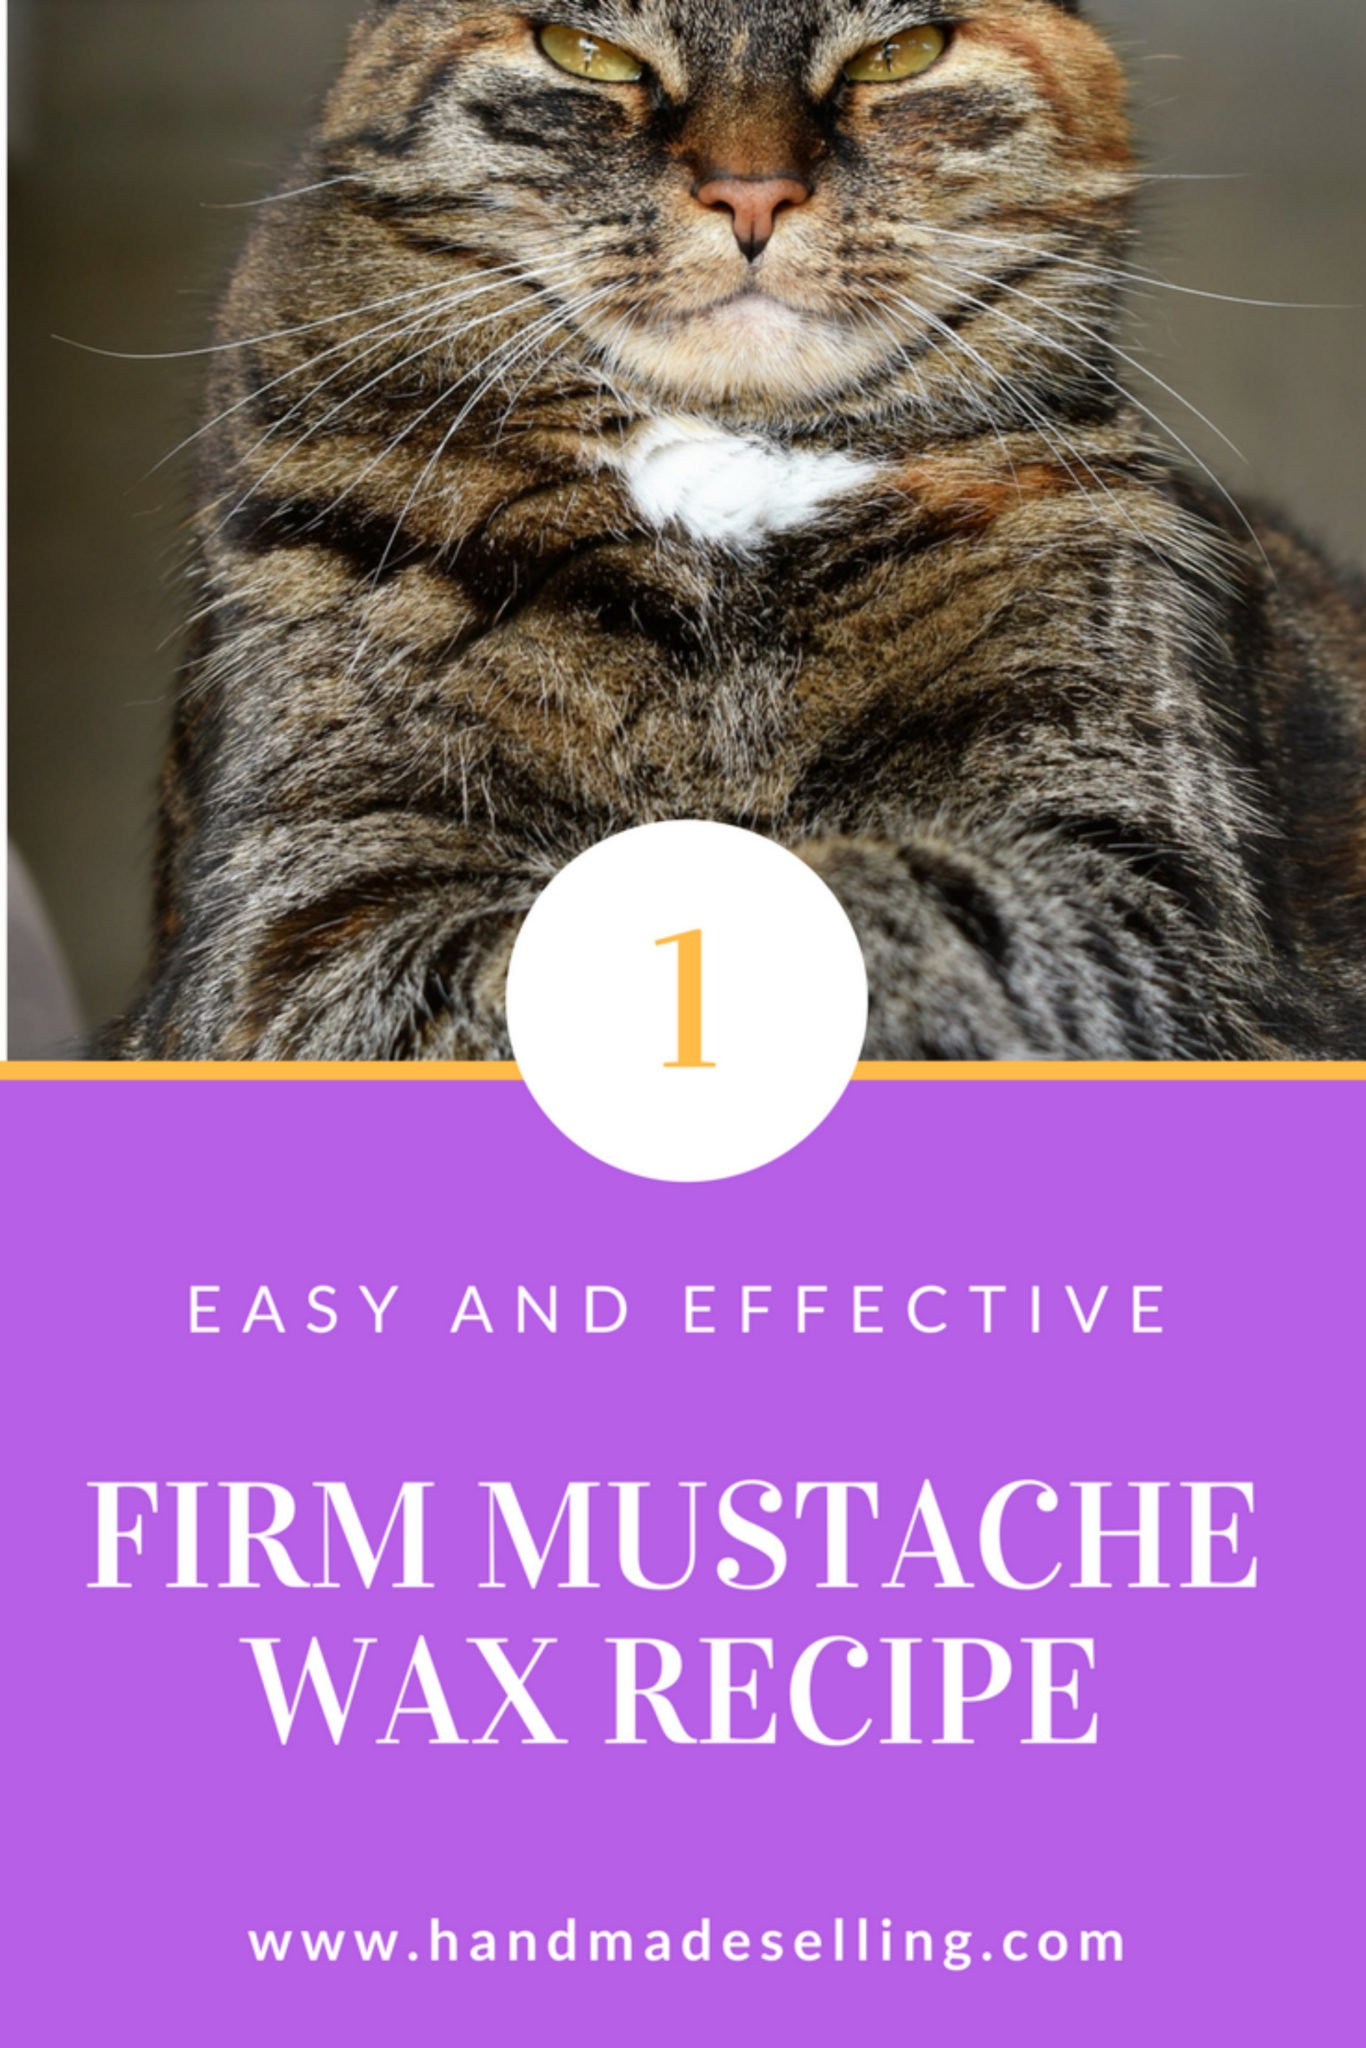 How to Make a Fantastic Mustache Wax Recipe